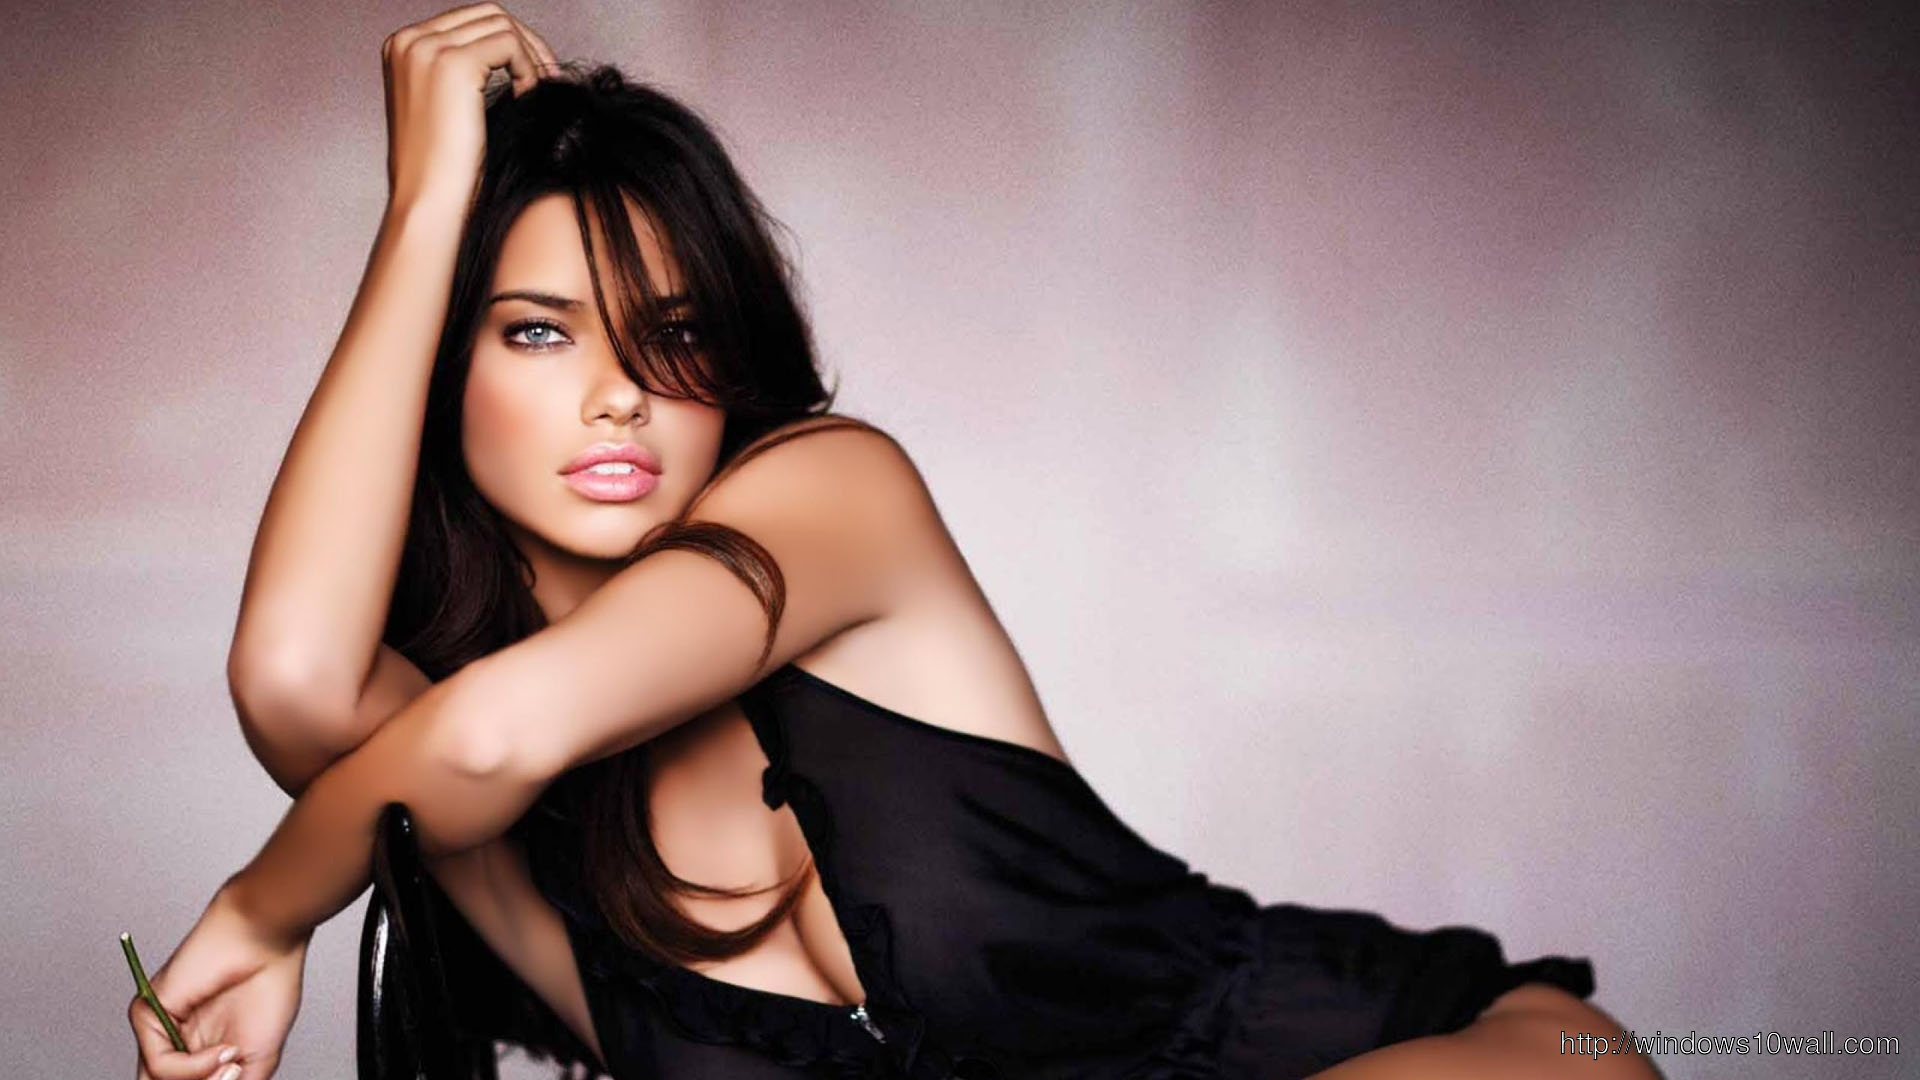 Adriana Lima Sexy Pose Wallpaper Windows 10 Wallpapers